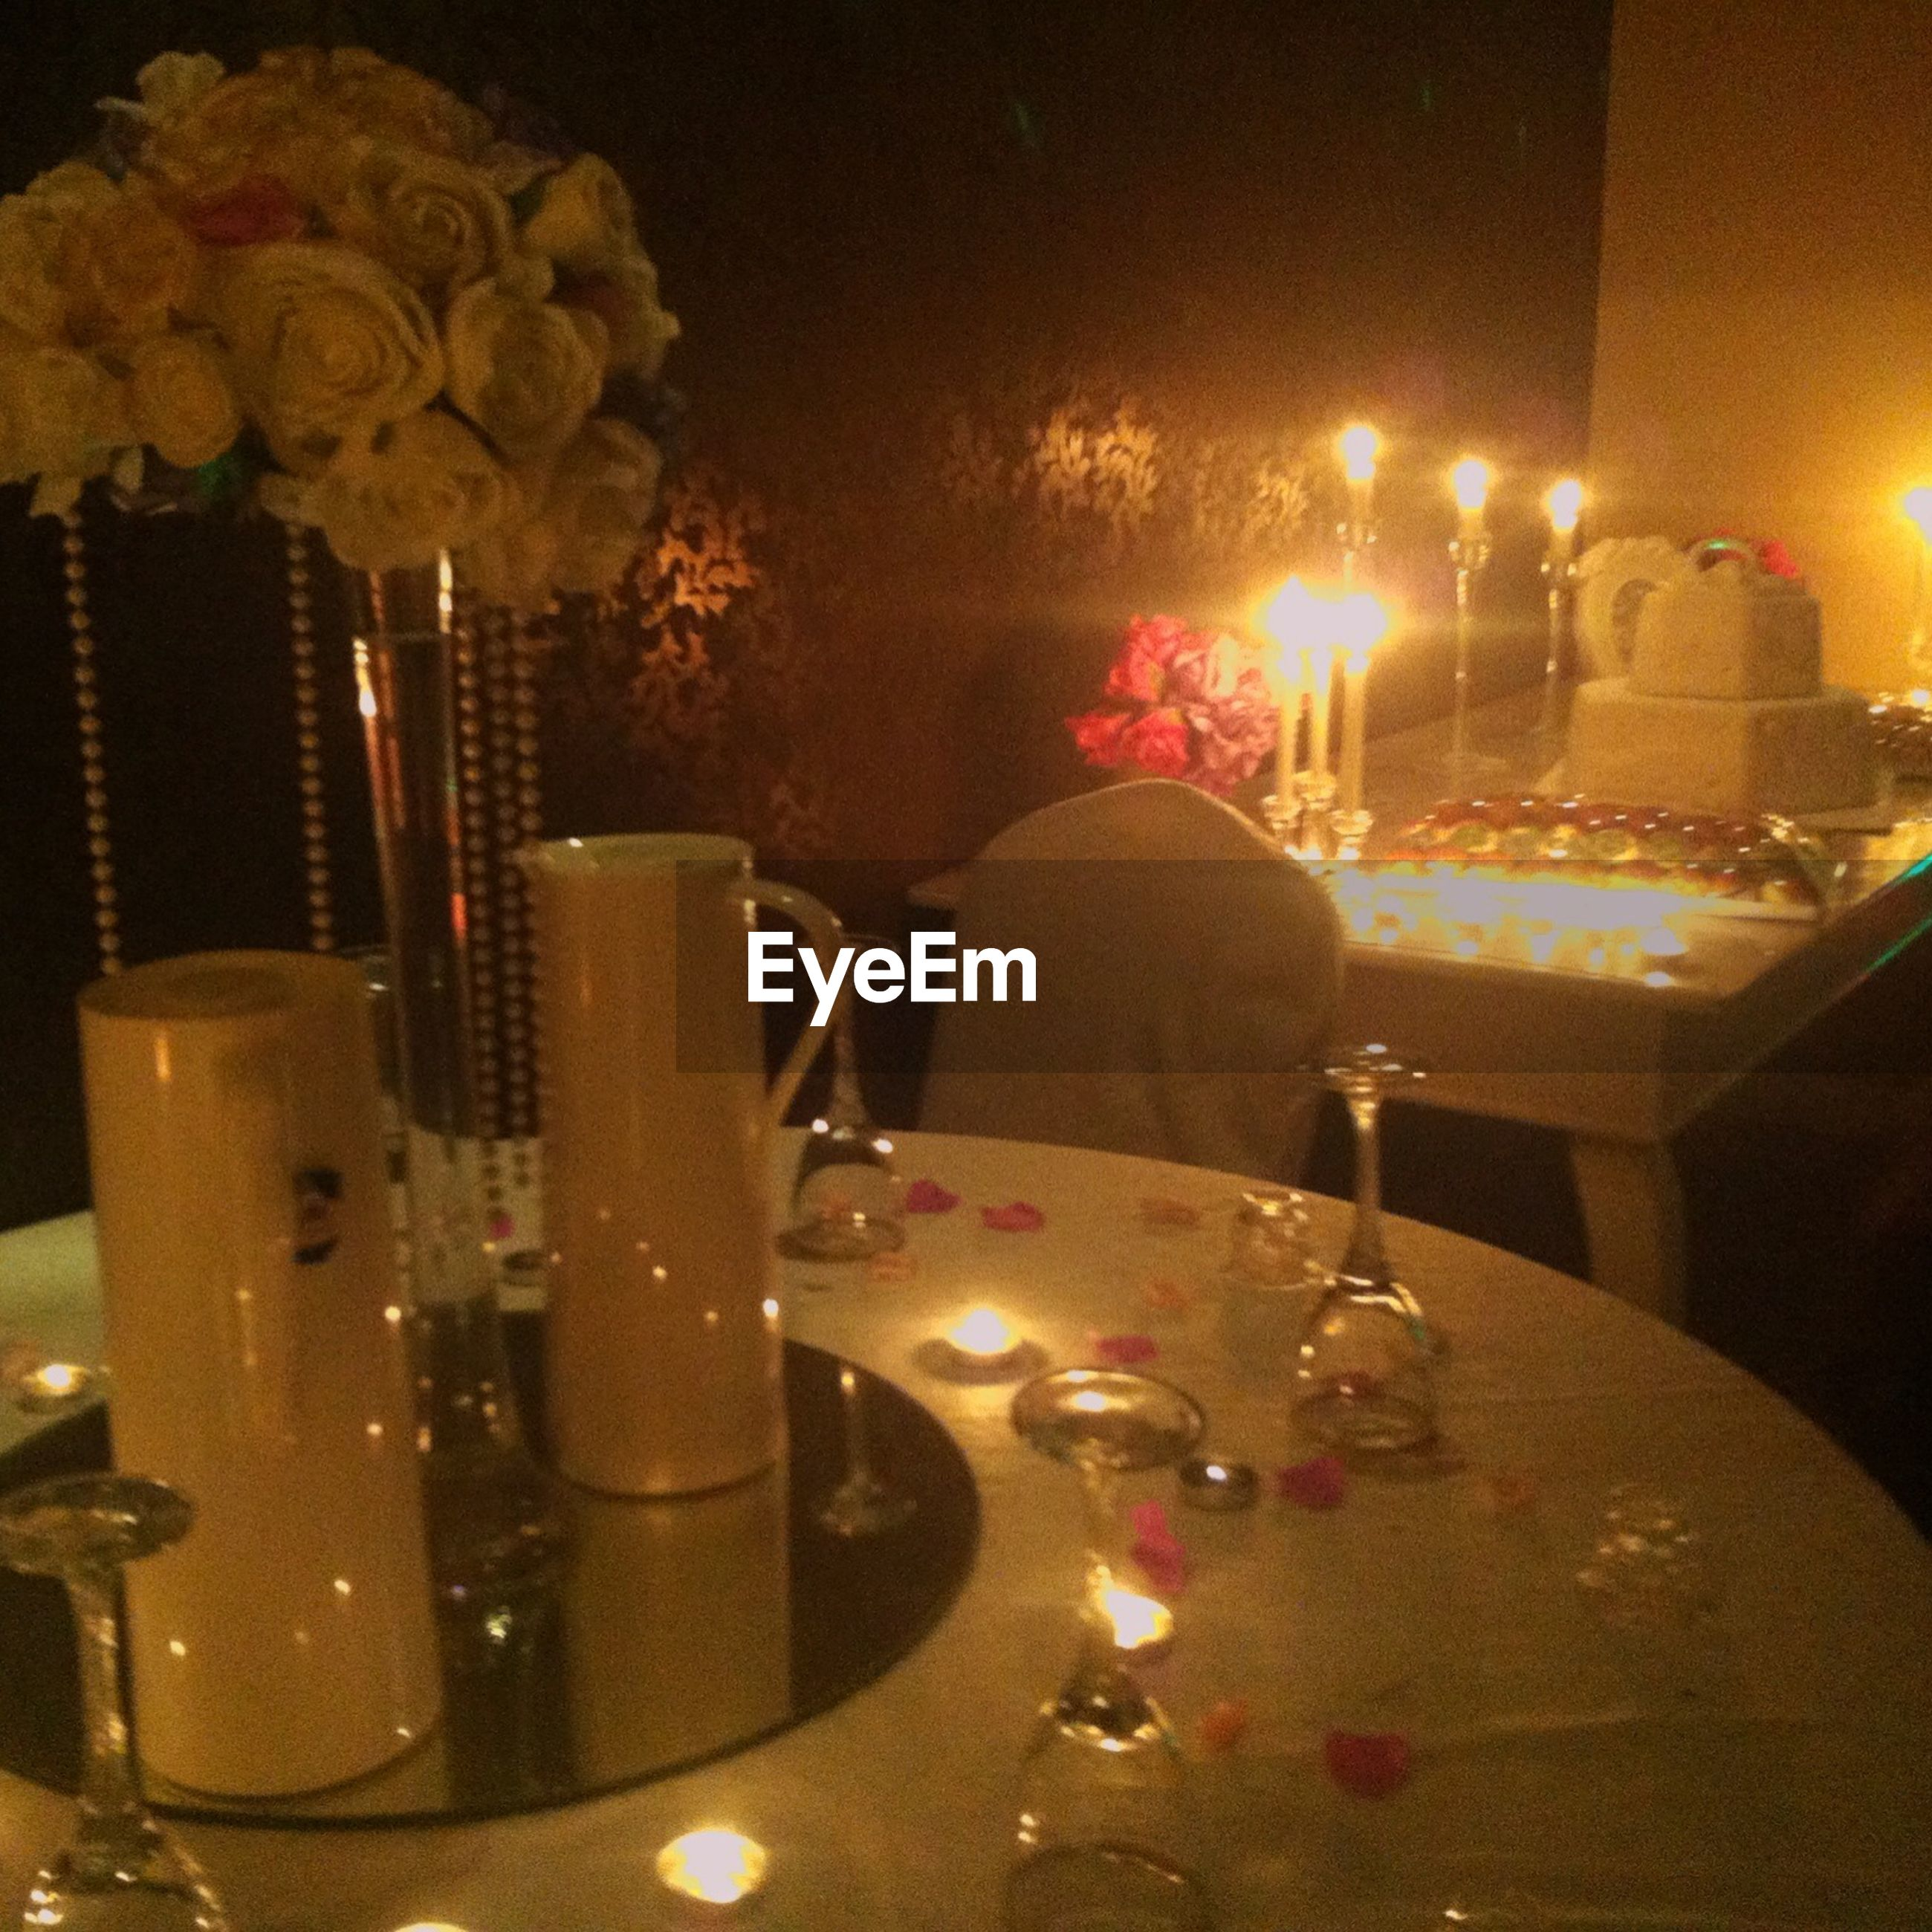 illuminated, indoors, night, burning, fire - natural phenomenon, flame, heat - temperature, glowing, candle, table, arts culture and entertainment, light - natural phenomenon, home interior, sitting, men, lighting equipment, food and drink, preparation